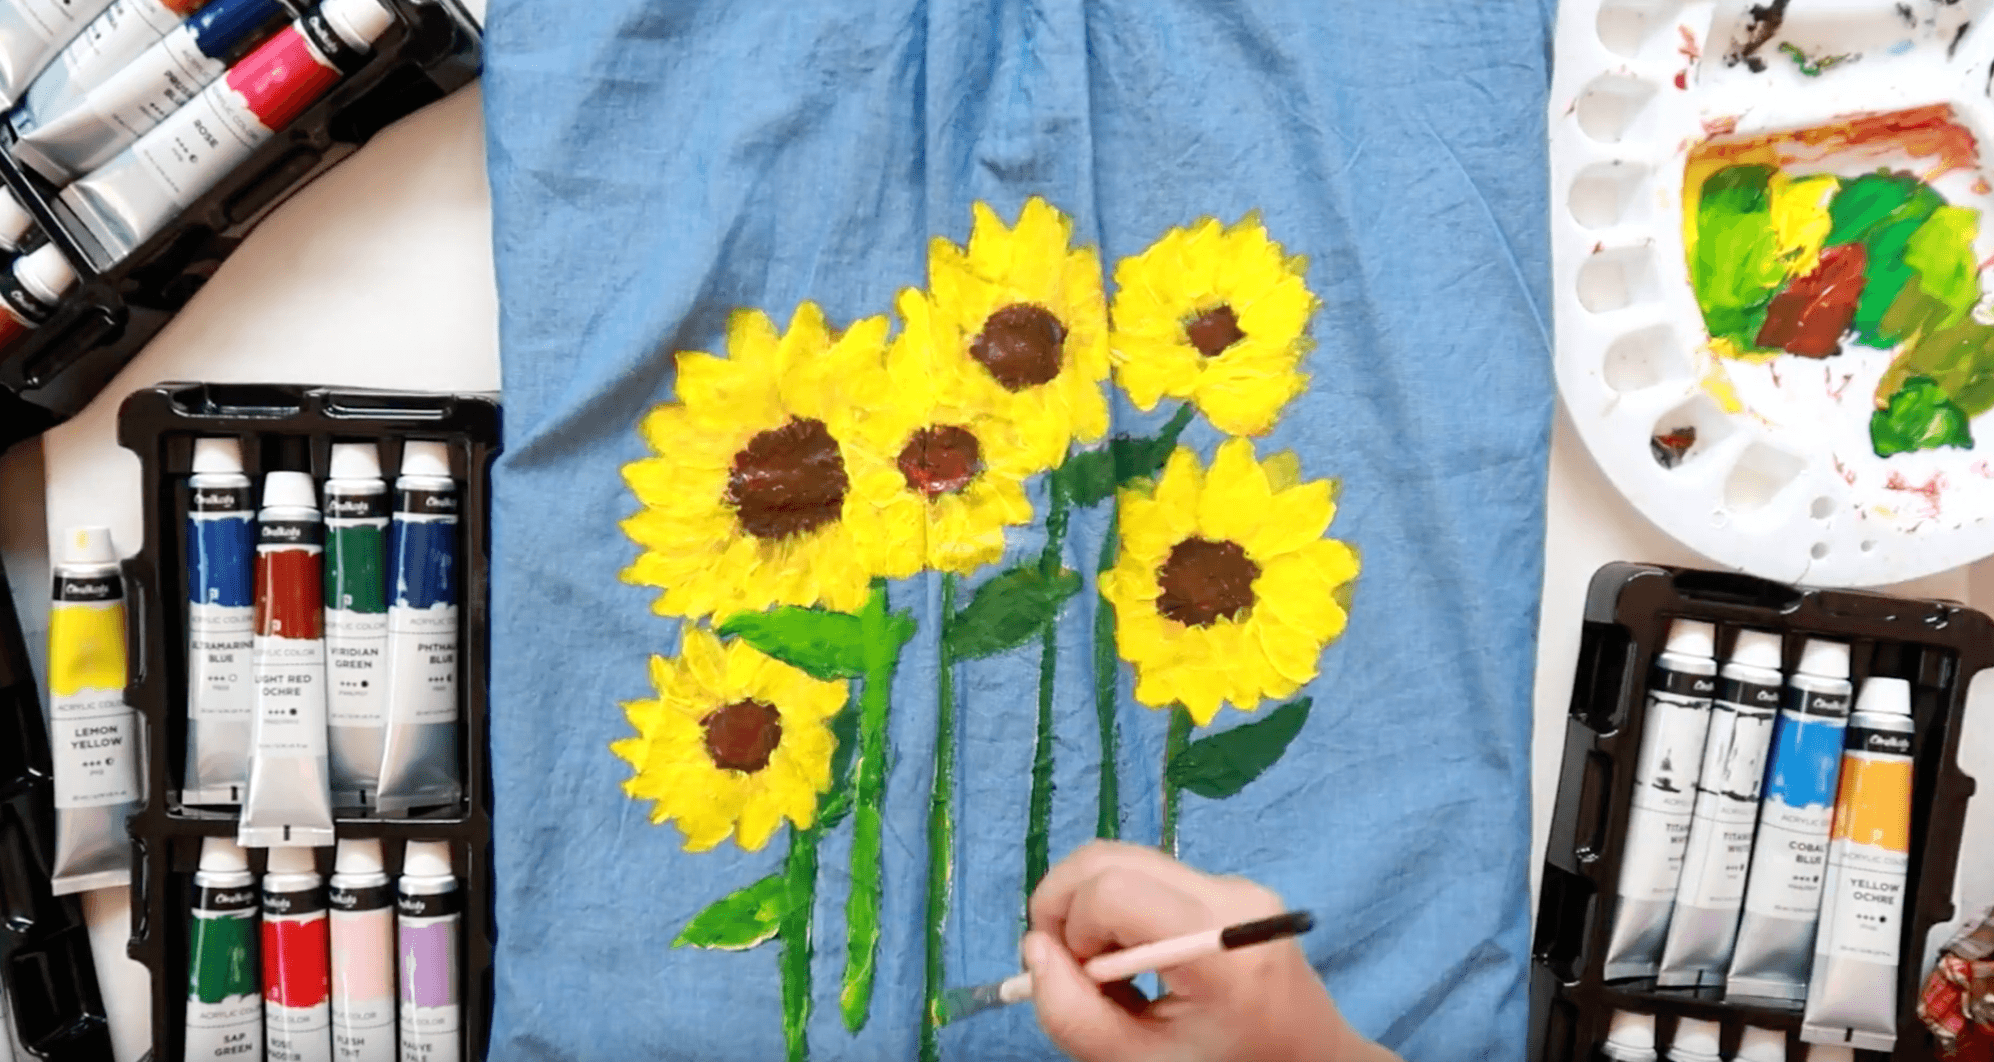 Hand Painted Sunflower on DIY Denim Dress Using Acrylic Paint